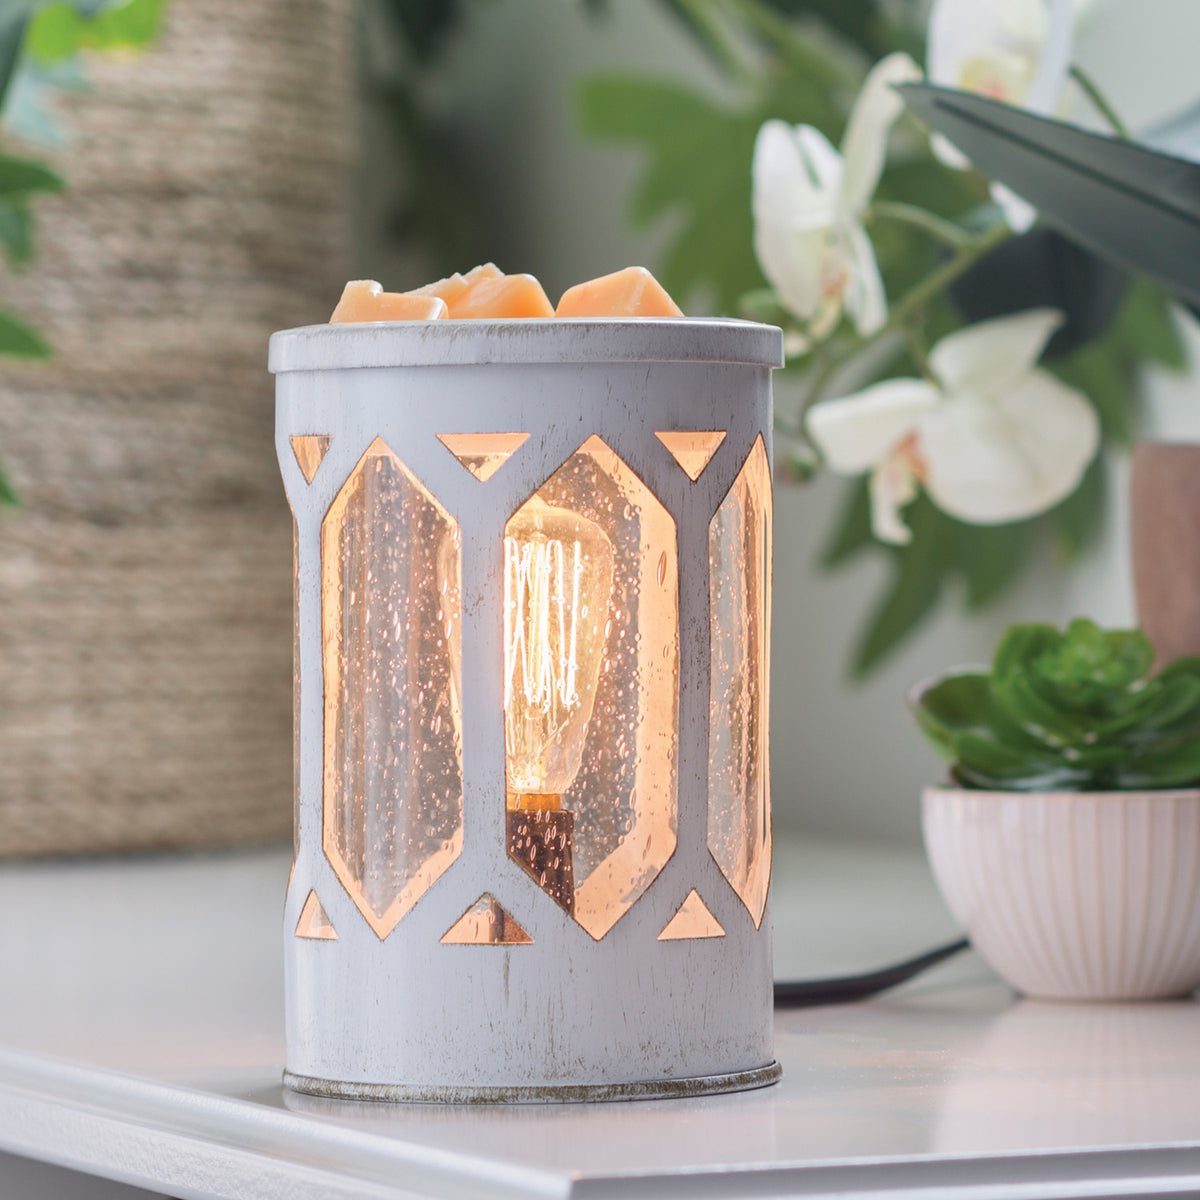 Candle Warmers Etc Arbor Illumination Edison Bulb Electric Wax Melter